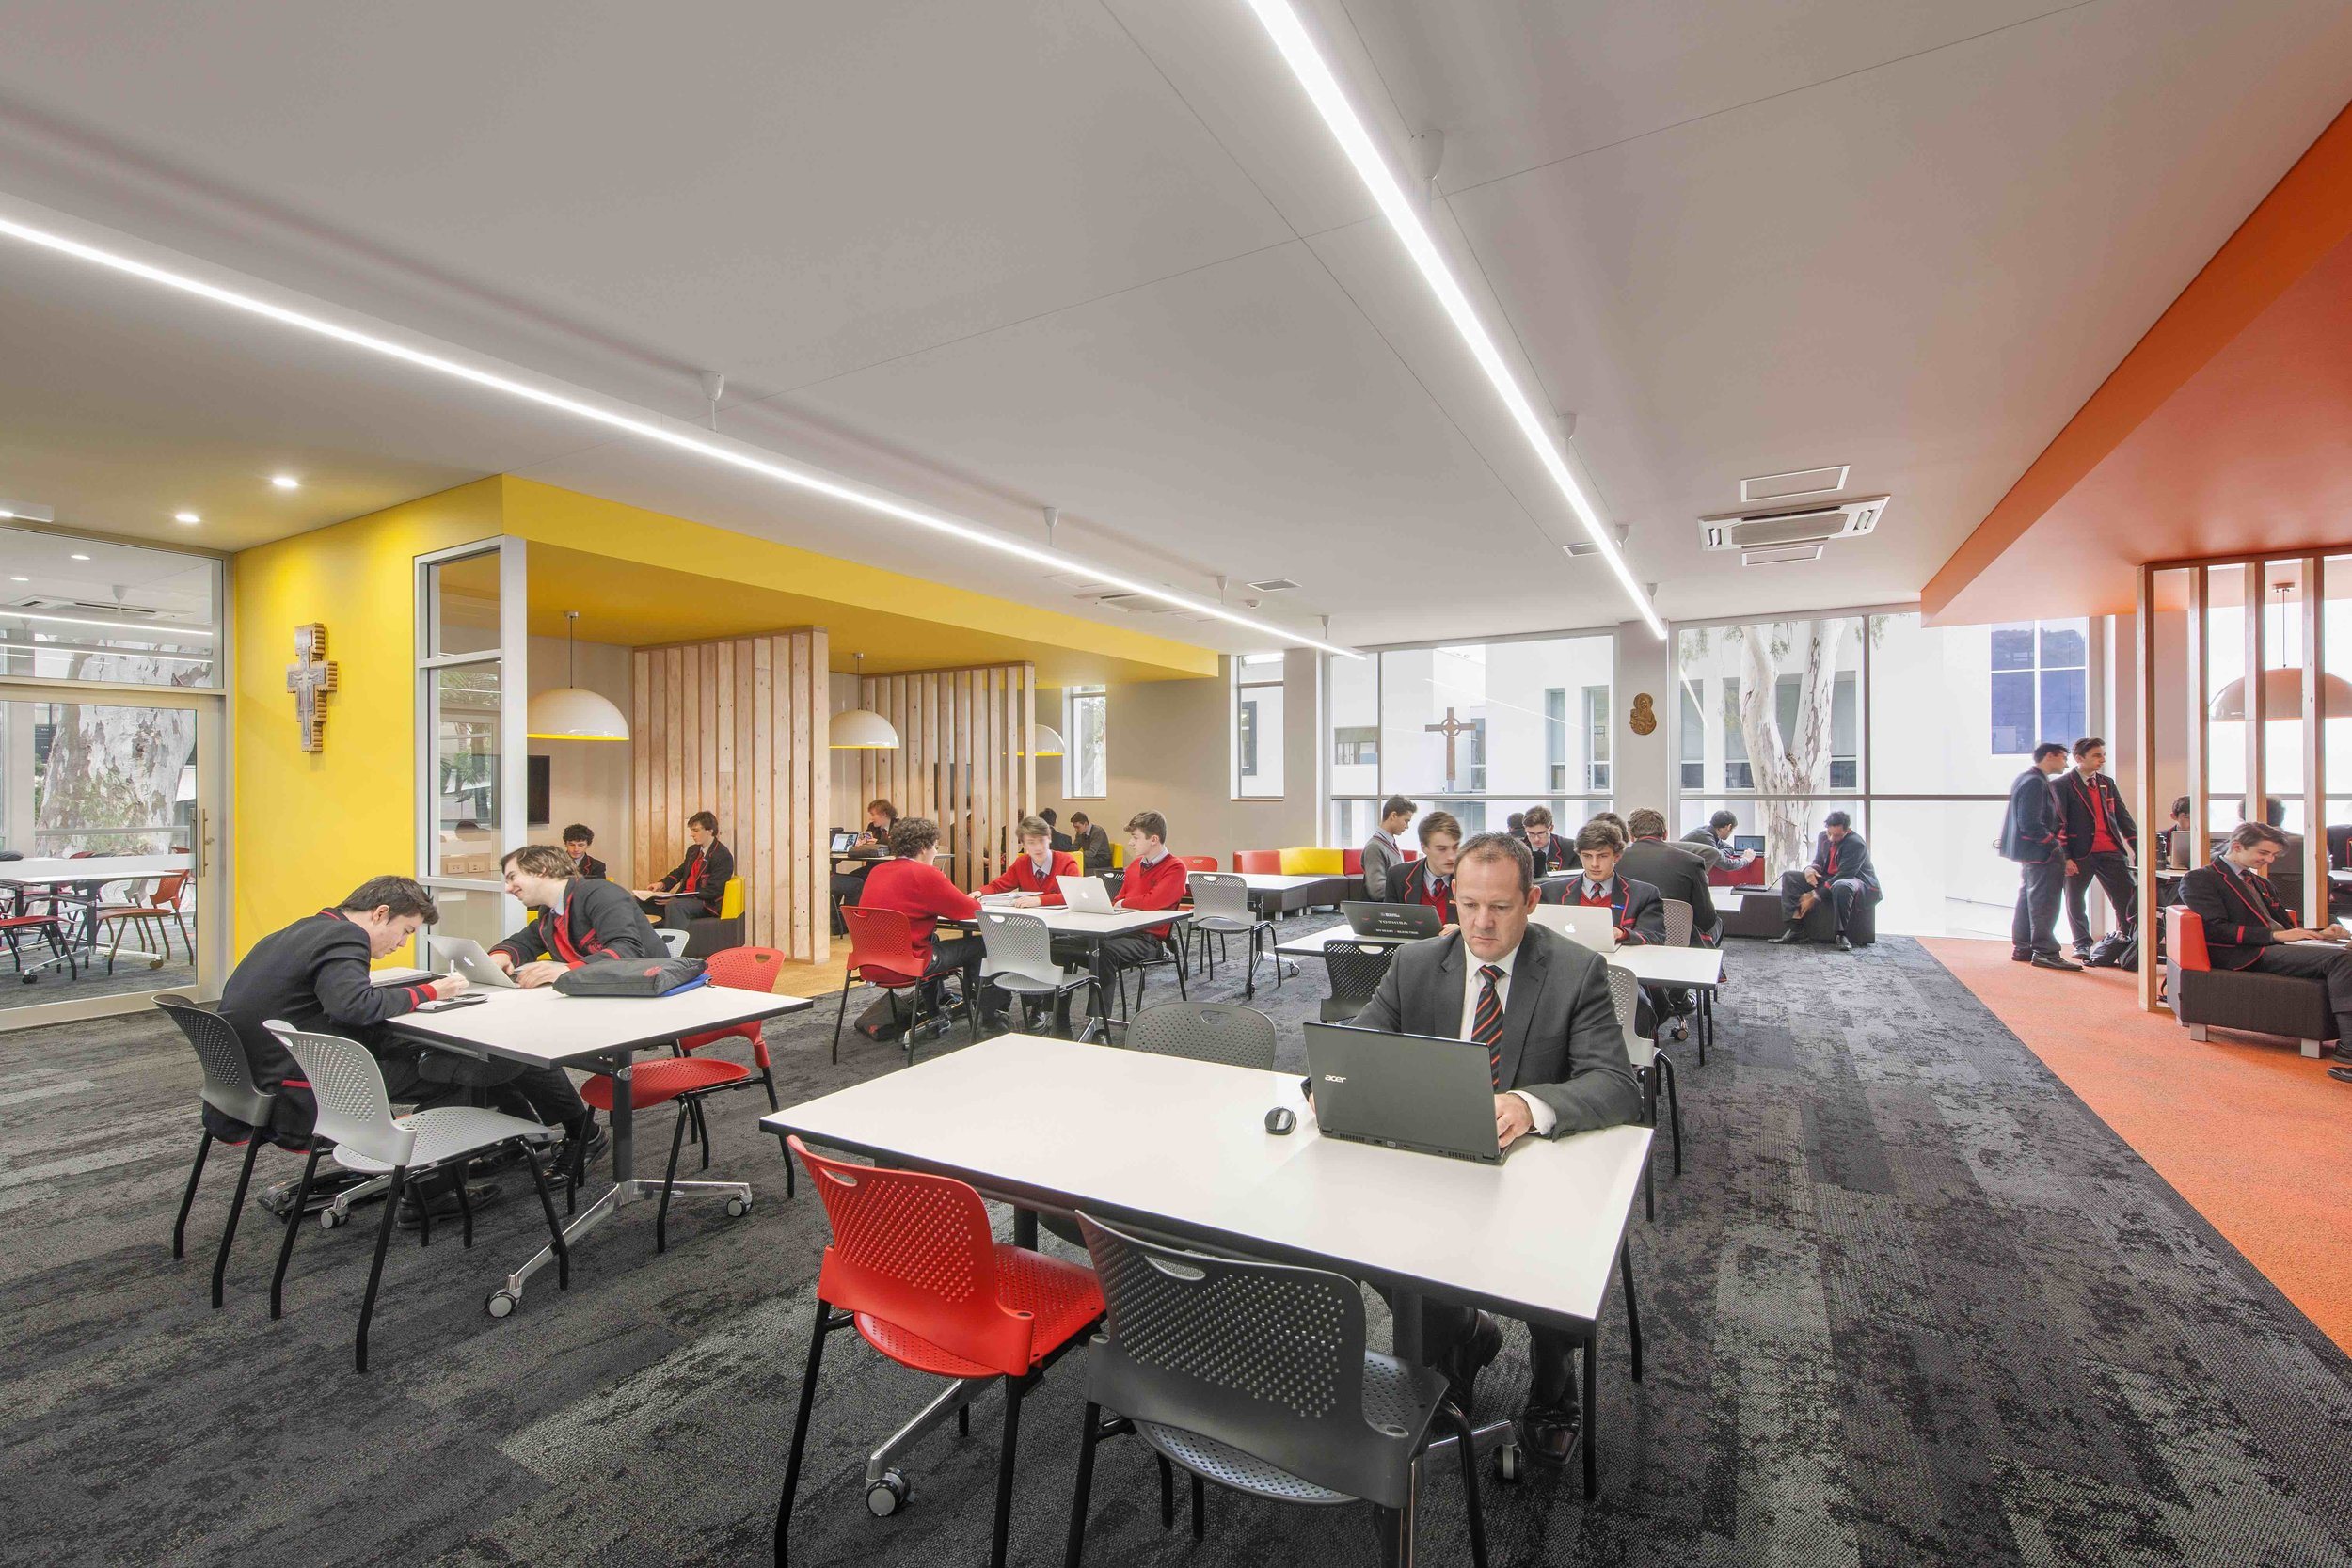 Rostrevor College   Library + Classroom Refurbishment   Services: BESTEC Contractor: Shape Constructions Photographer: David Sievers Photography  Staged redevelopment of existing library space in order to provide a contemporary learning space and equity centre. Multiple classrooms were also re-furbished to update existing facilities.